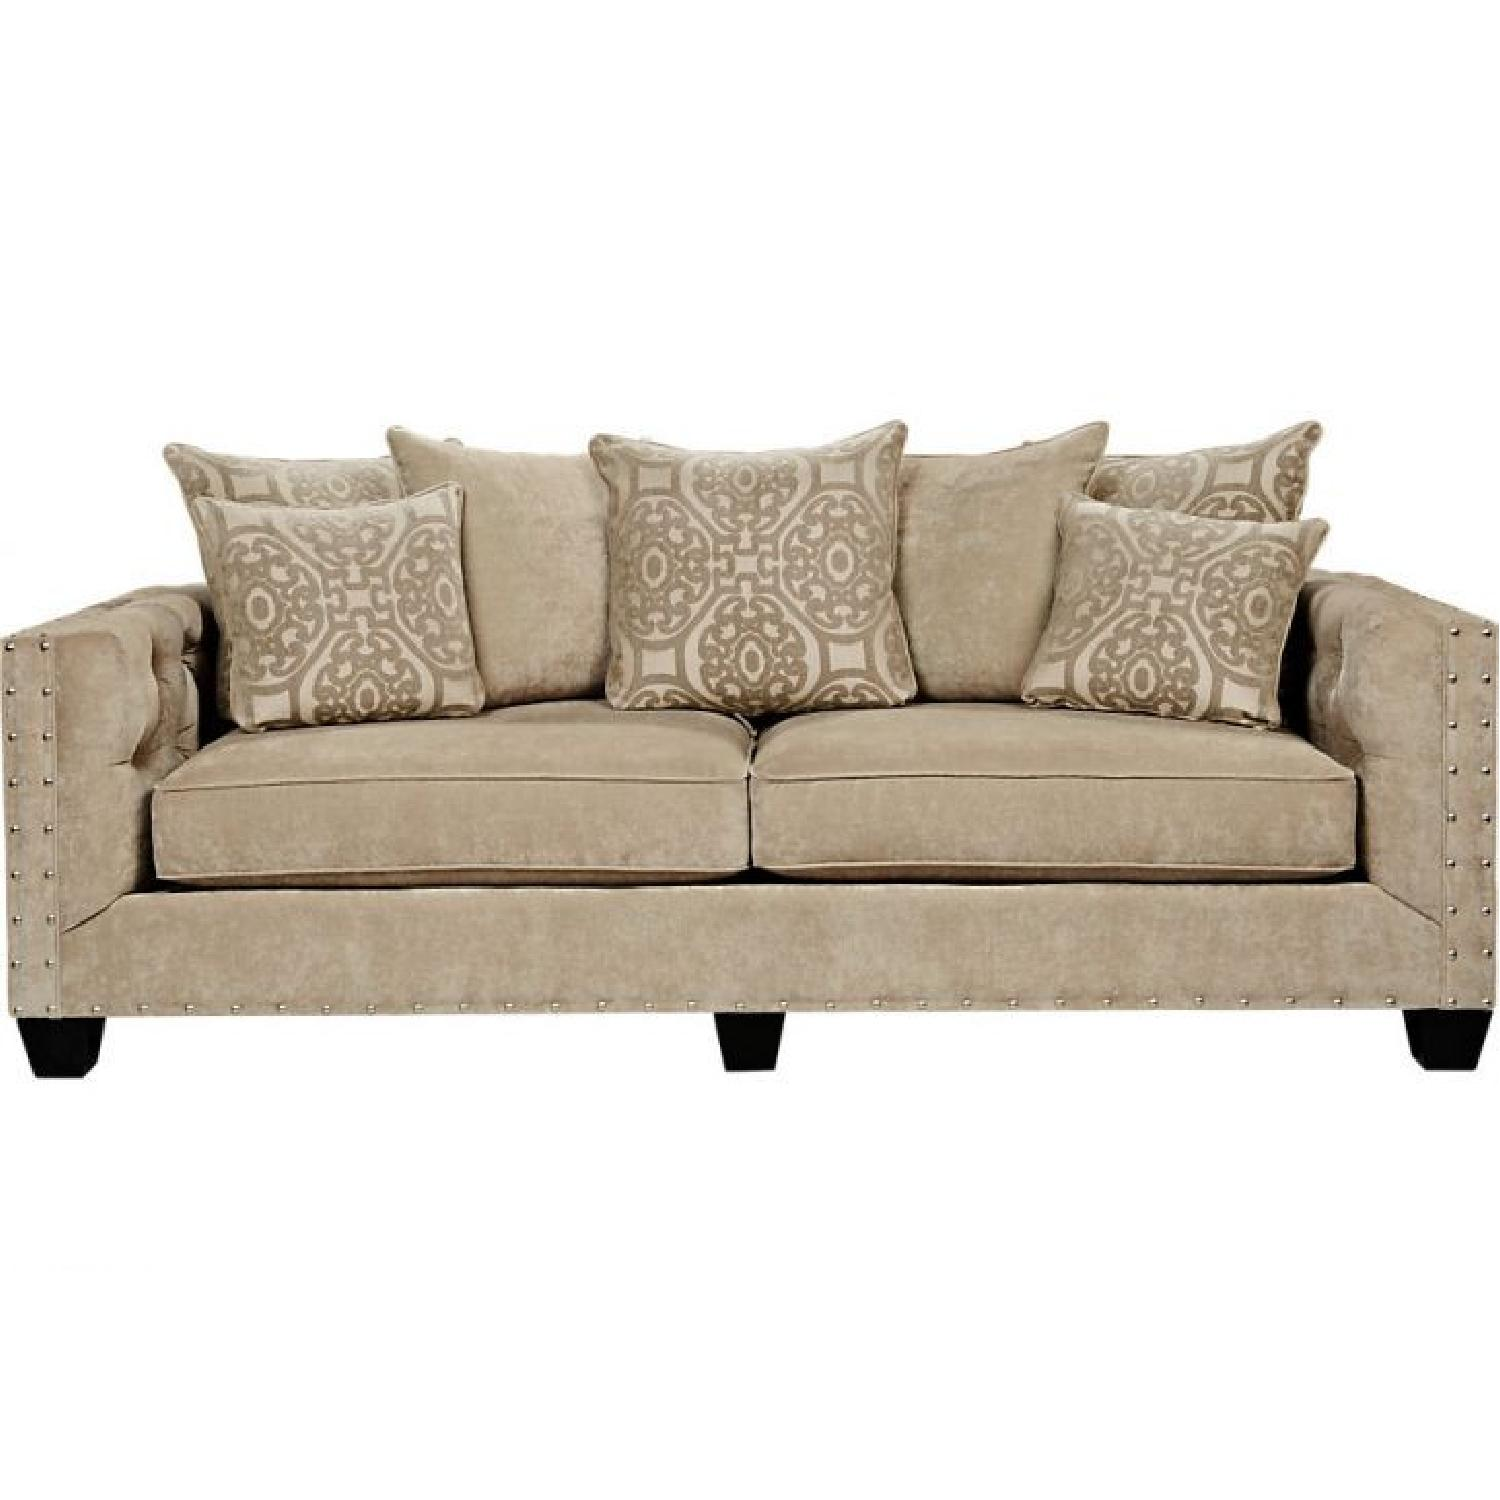 Raymour & Flanigan Sofa w/ Tufted Button Detail - image-0